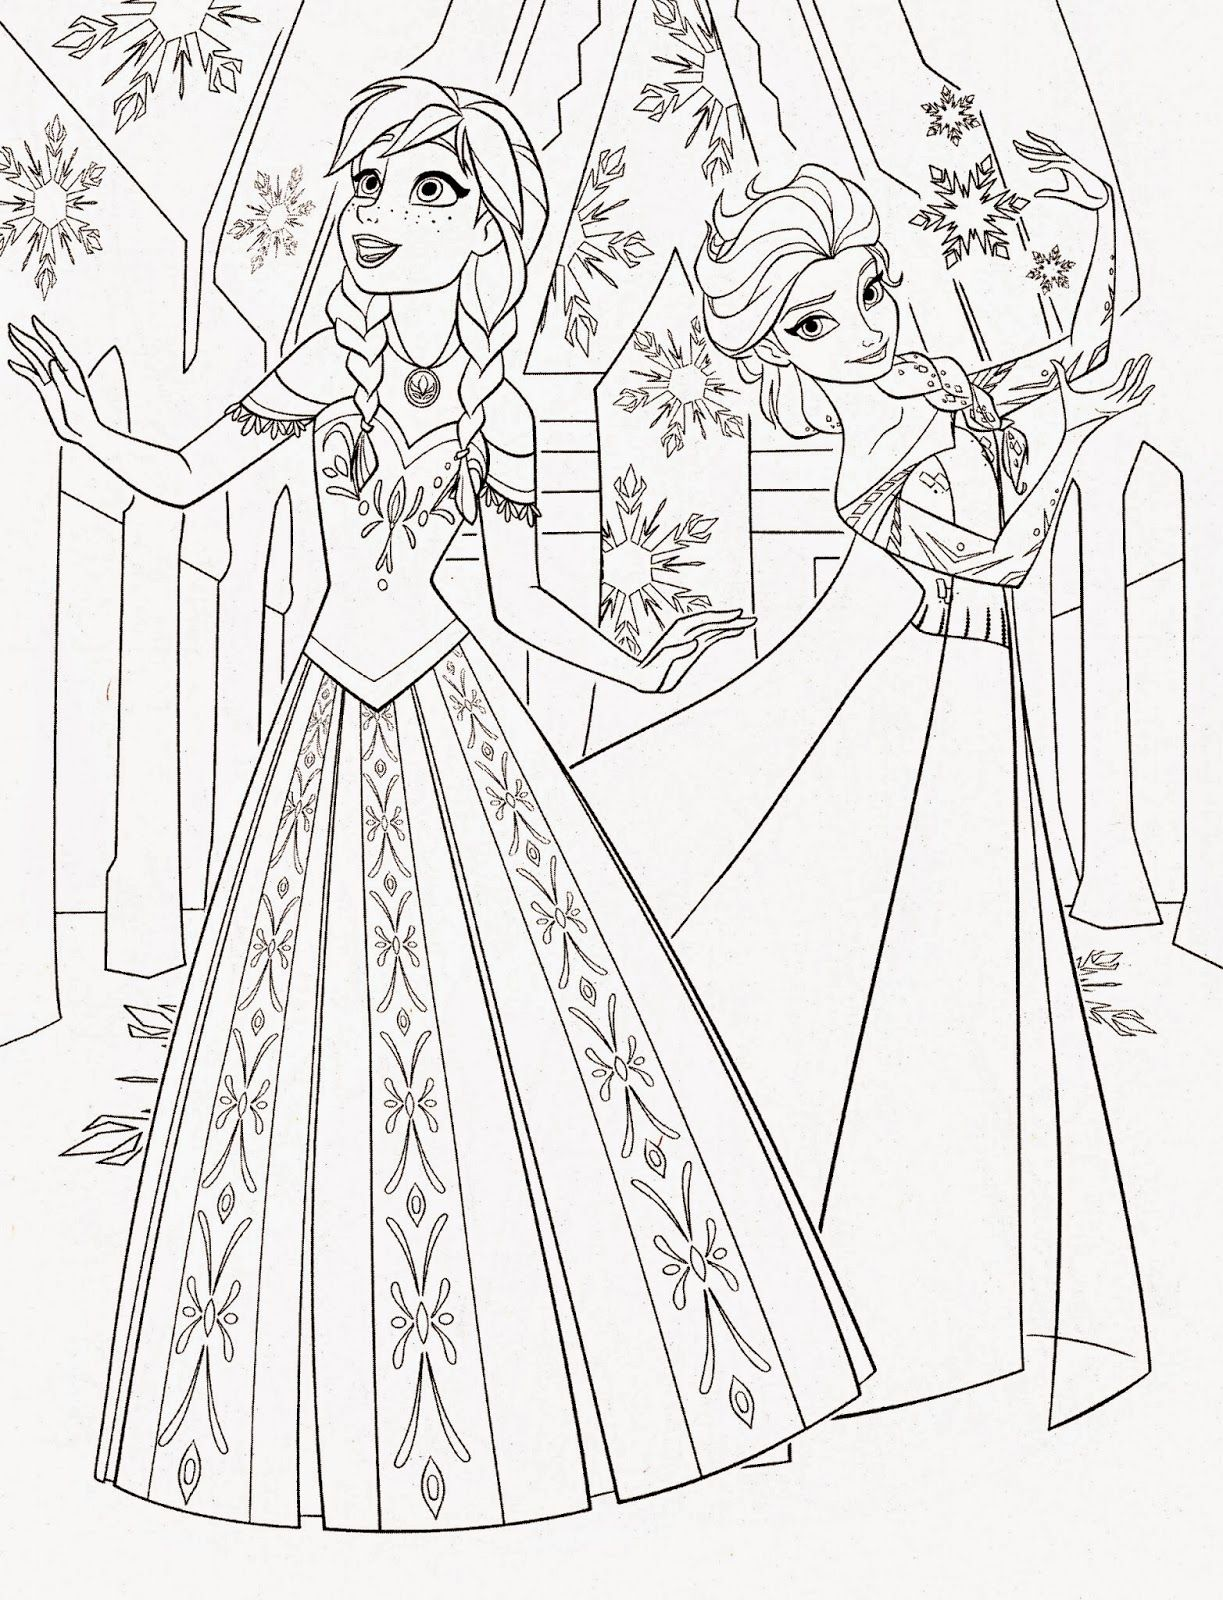 Disney coloring therapy - Disney Princess Frozen Elsa And Anna Coloring Pages